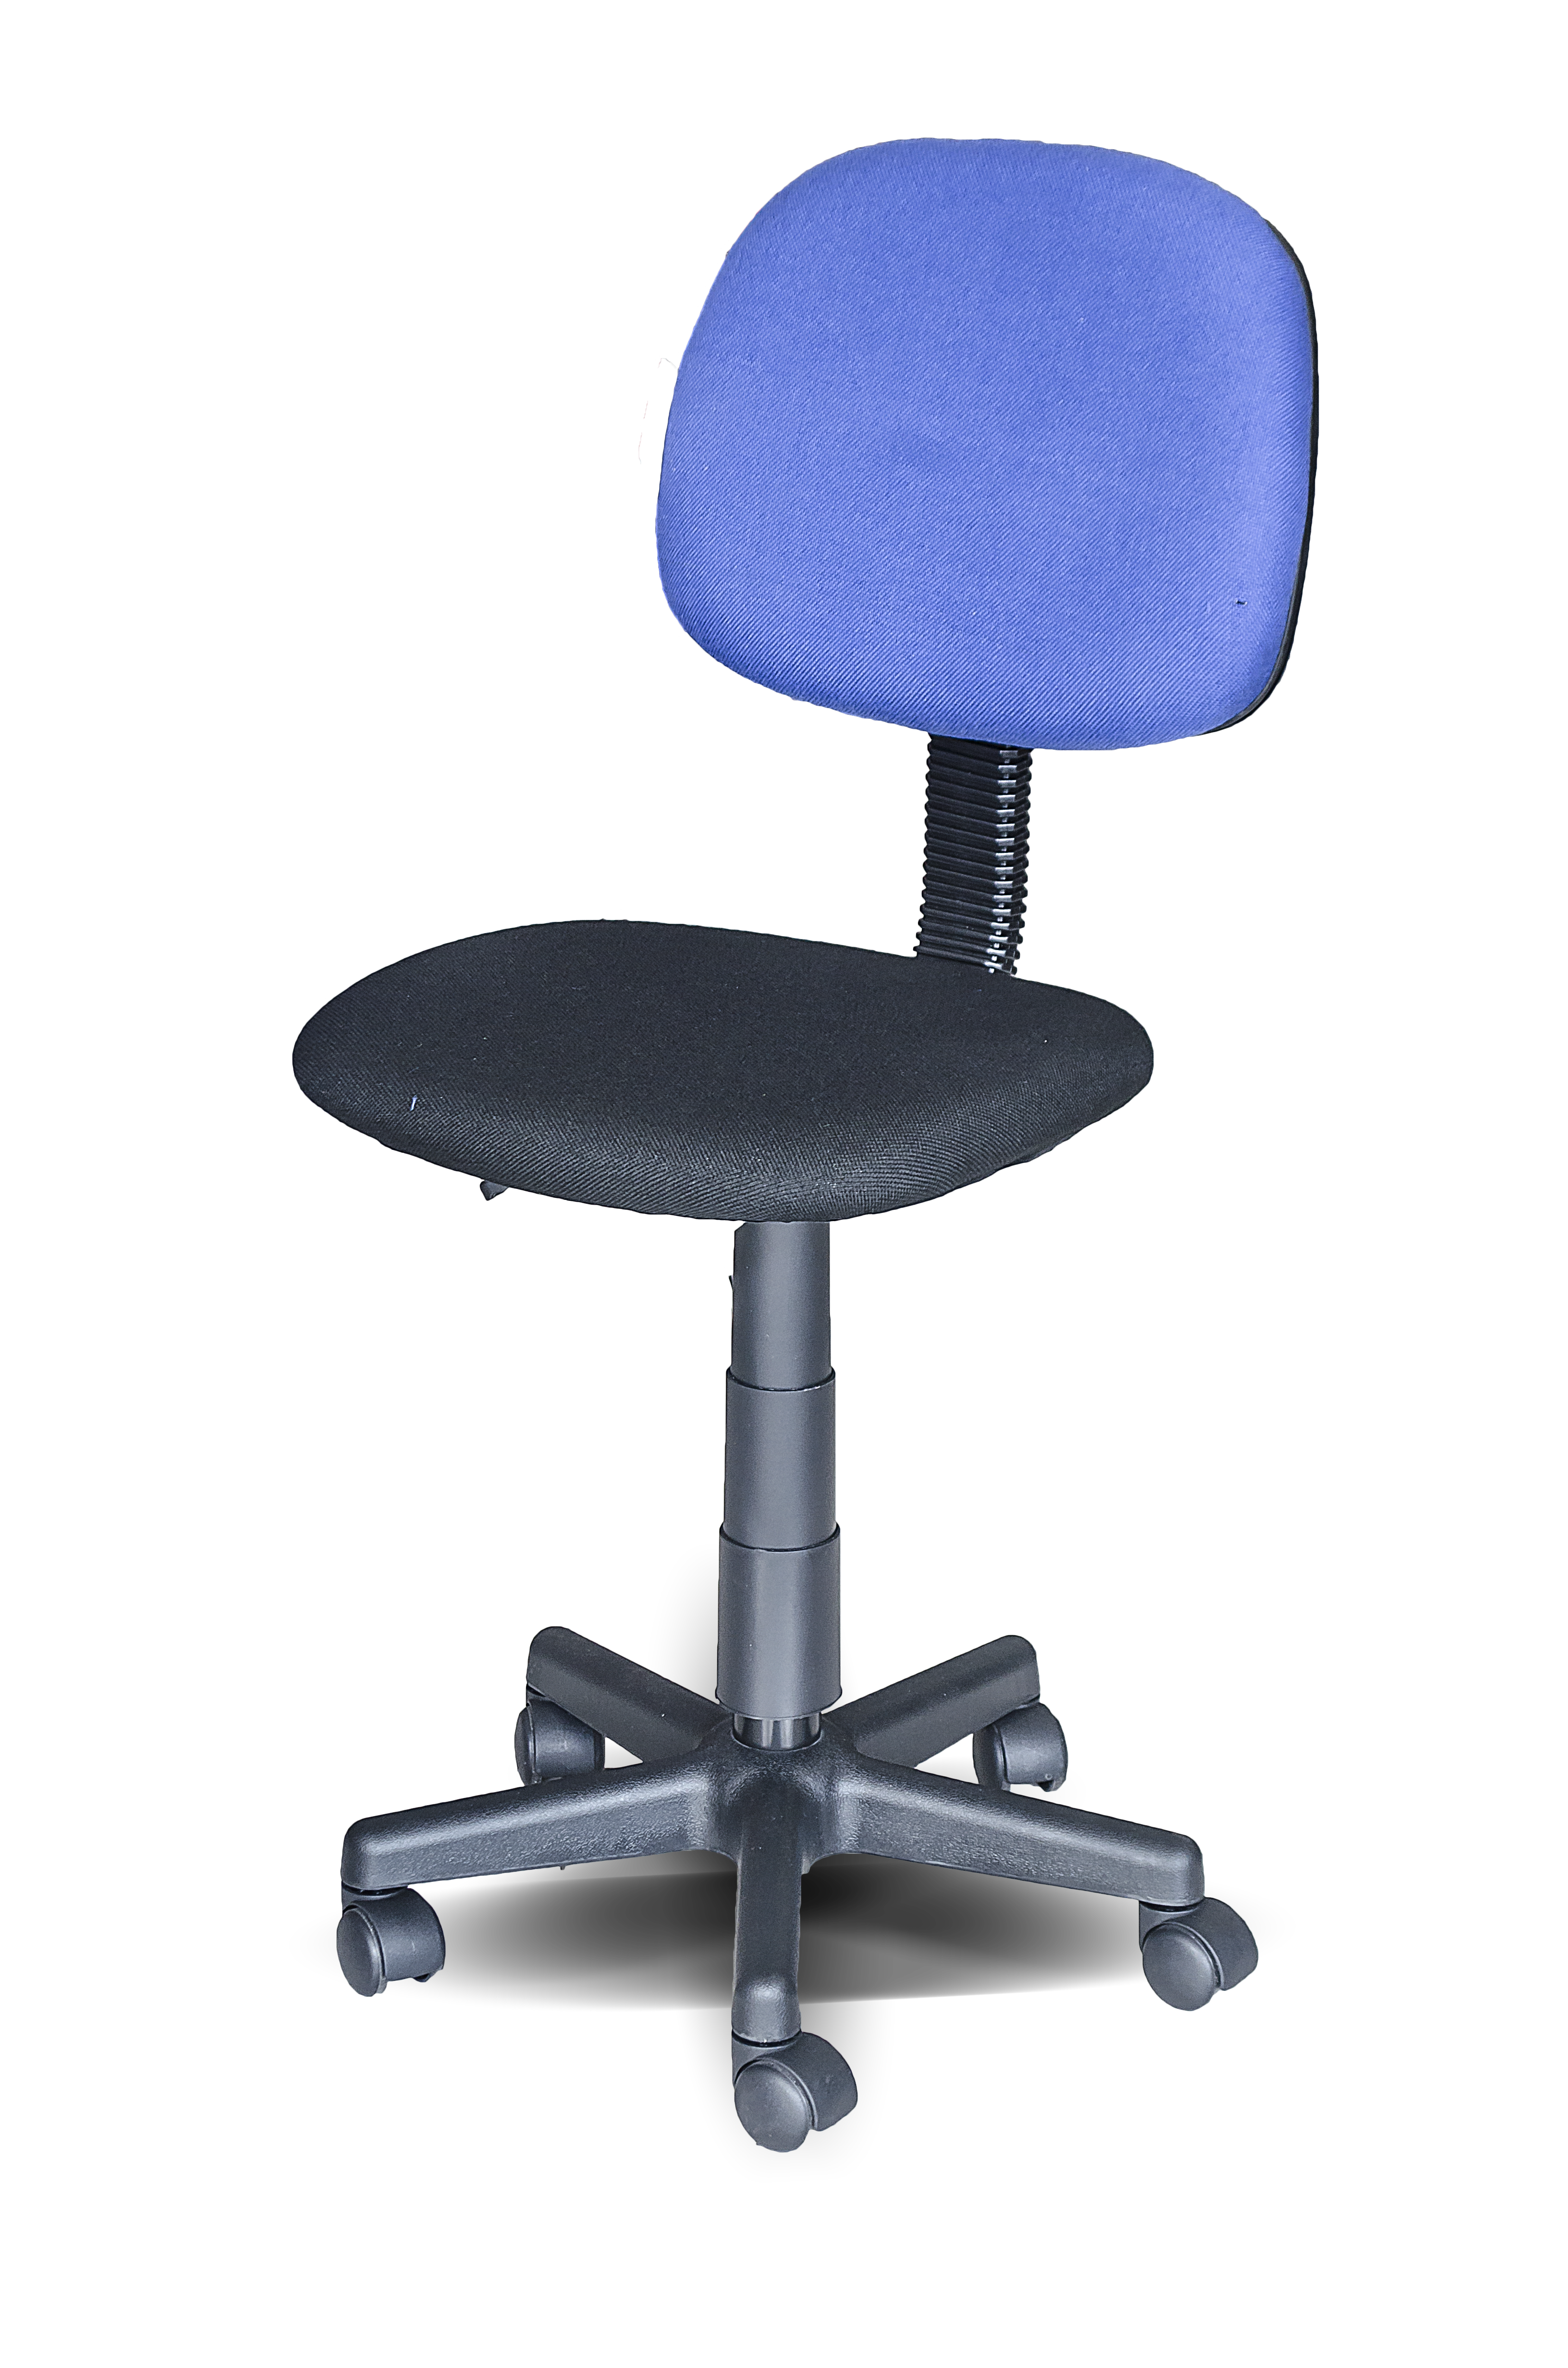 Office Chairs Images. Typist Chair Without Armrest Model No. RJ 2204. Colour